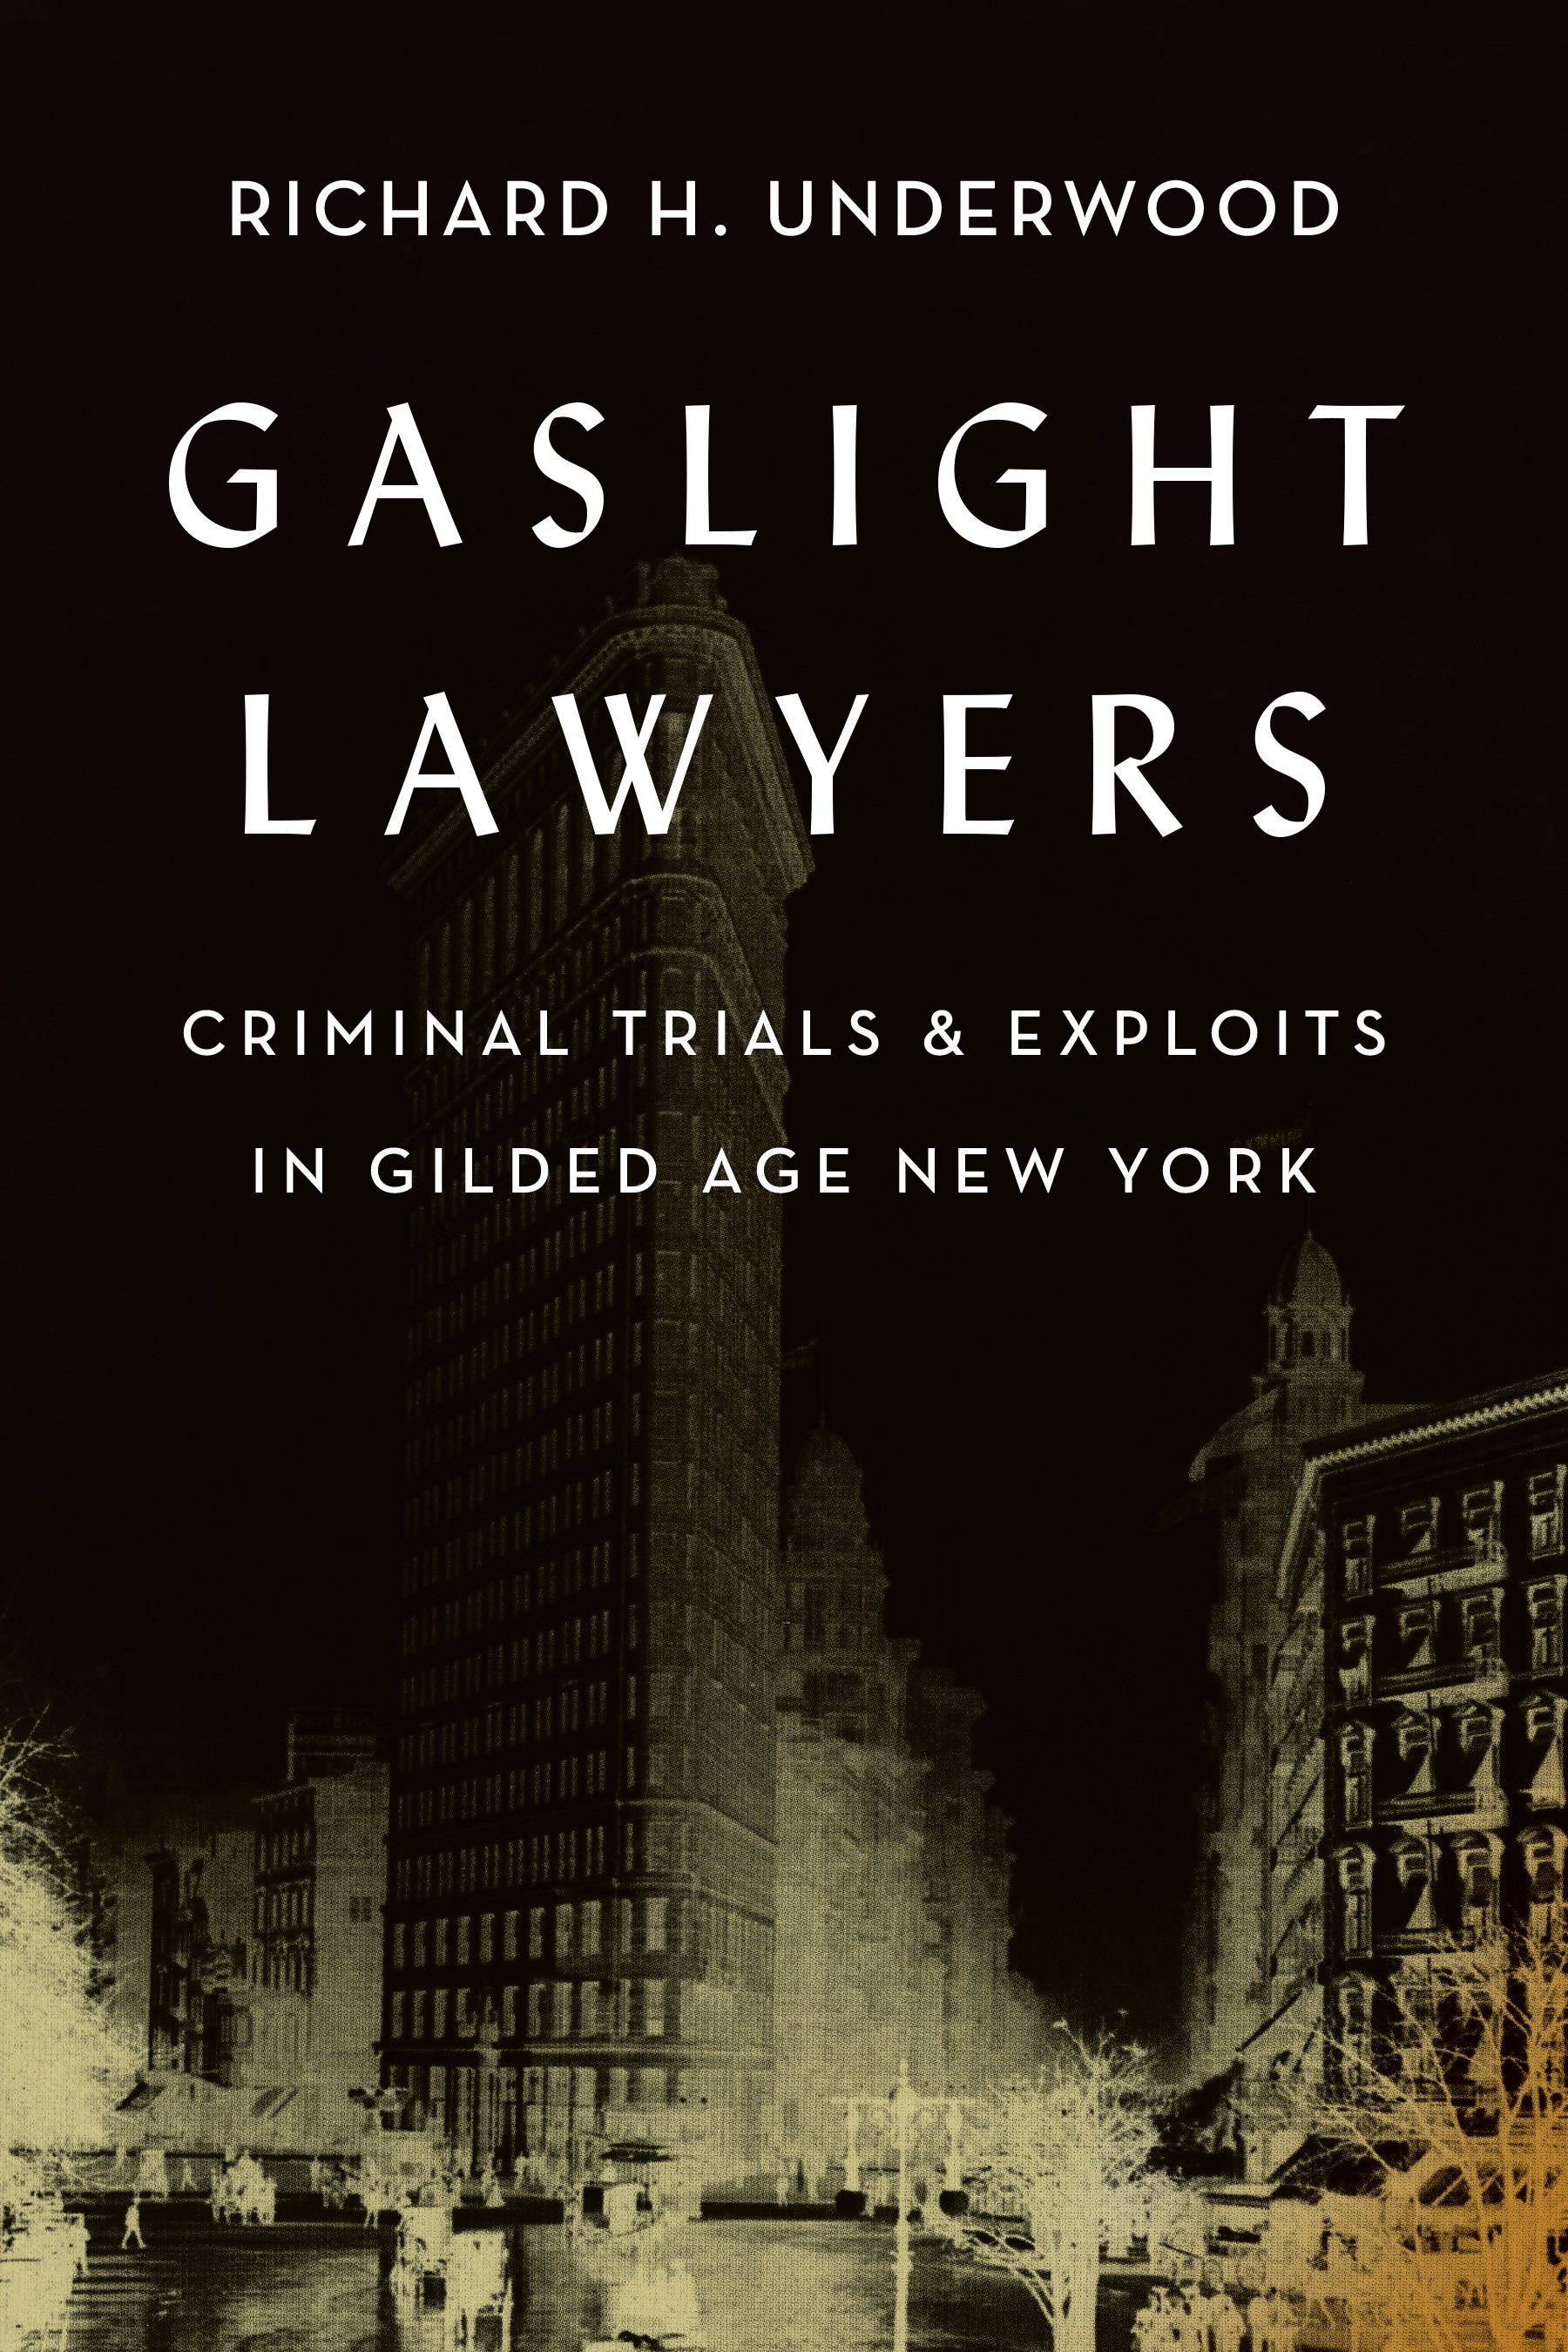 Gaslight Lawyers: Criminal Trials & Exploits in Gilded Age New York, by Richard H. Underwood (Shadelandhouse Modern Press, Sept. 2017)